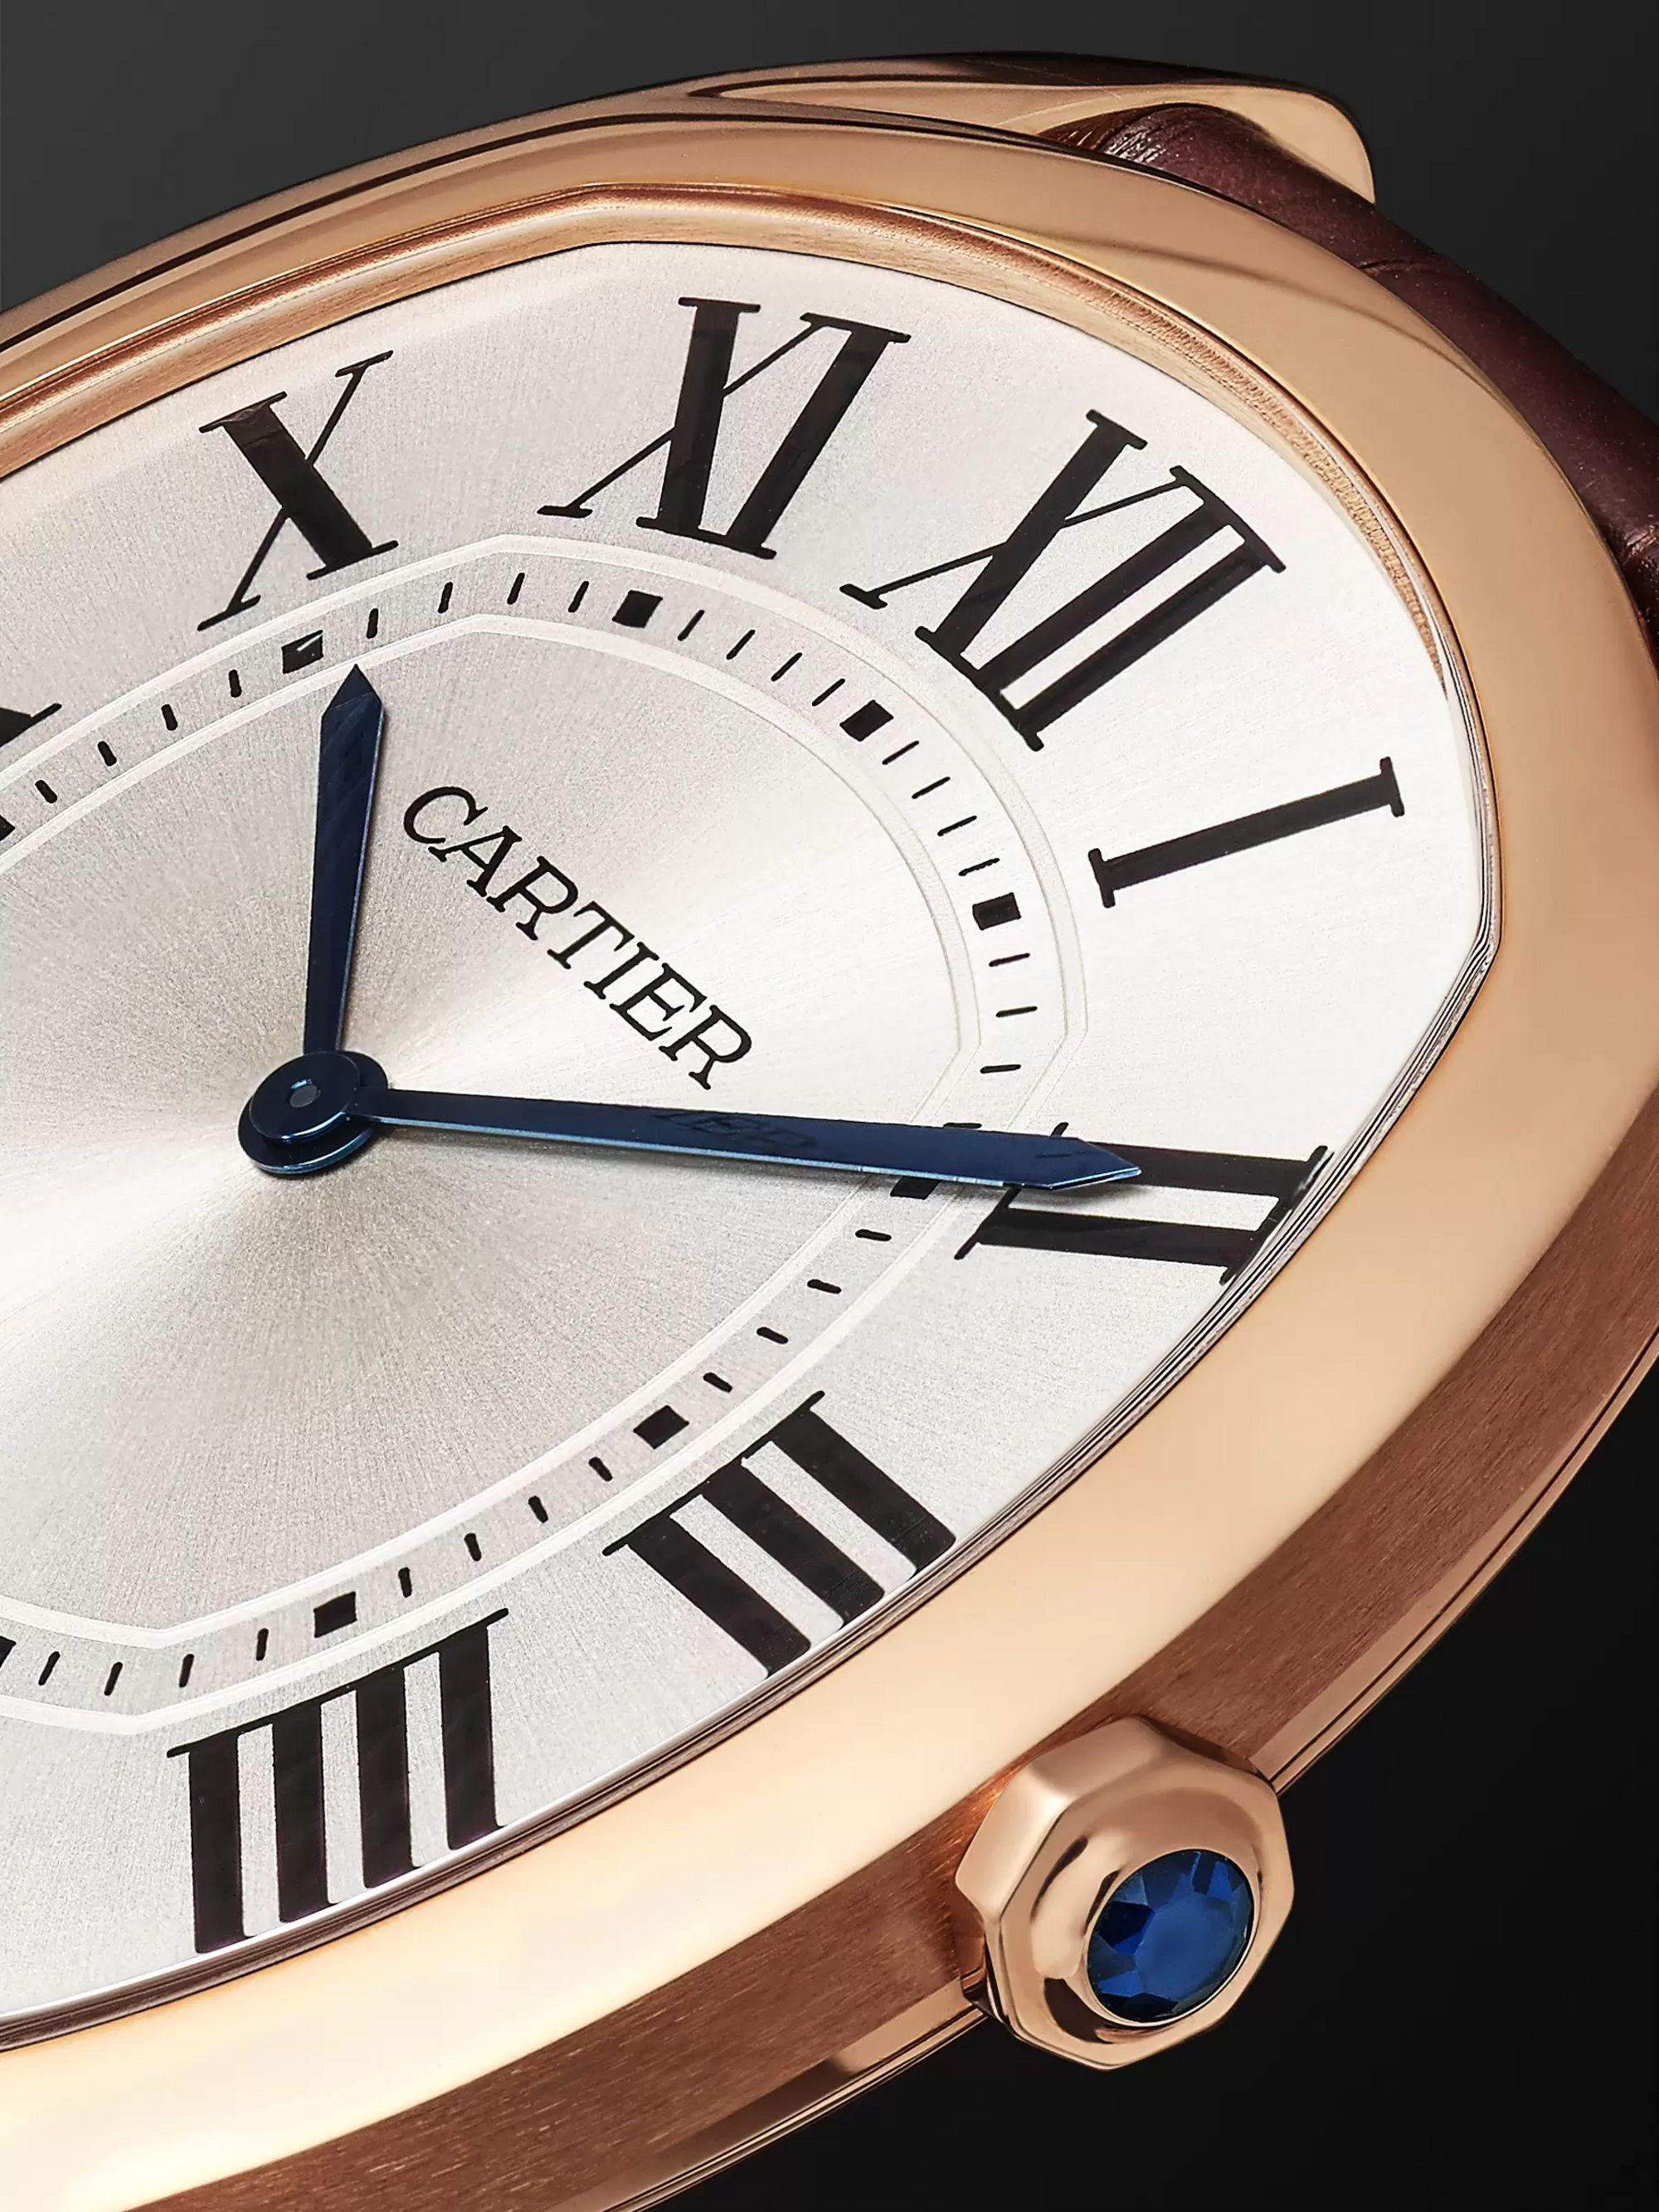 Cartier Drive de Cartier 18-Karat Pink Gold and Alligator Watch, Ref. No. CRWGNM0006